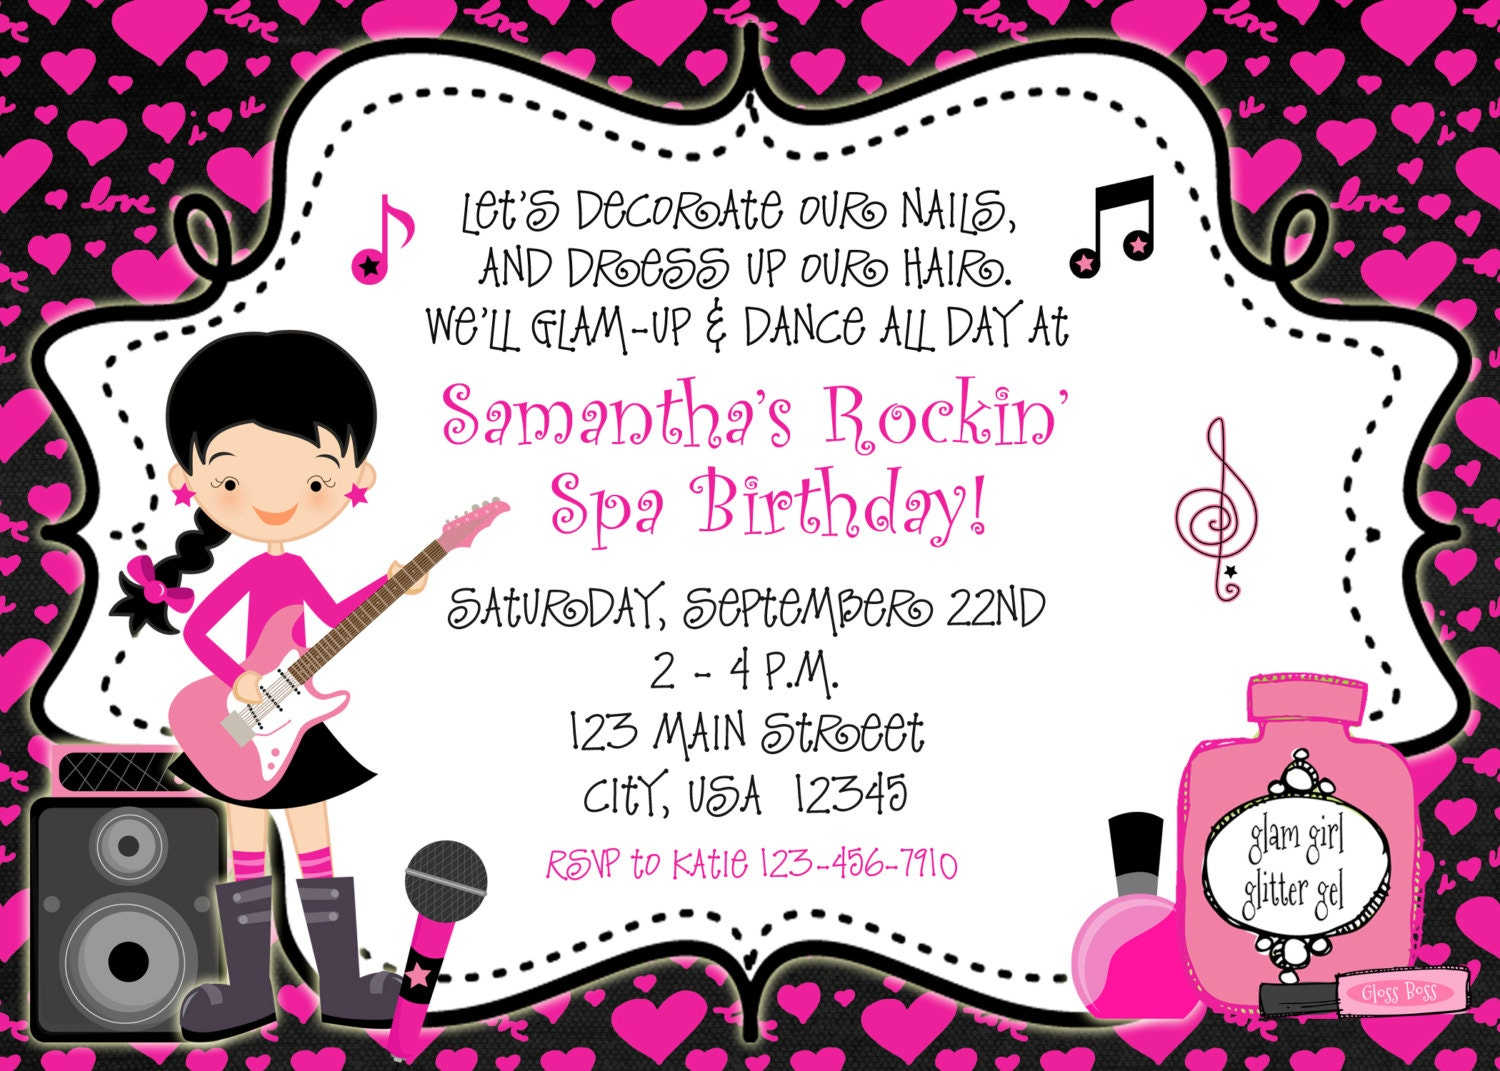 Rockin Spa Birthday Party Invitation glamour dance party